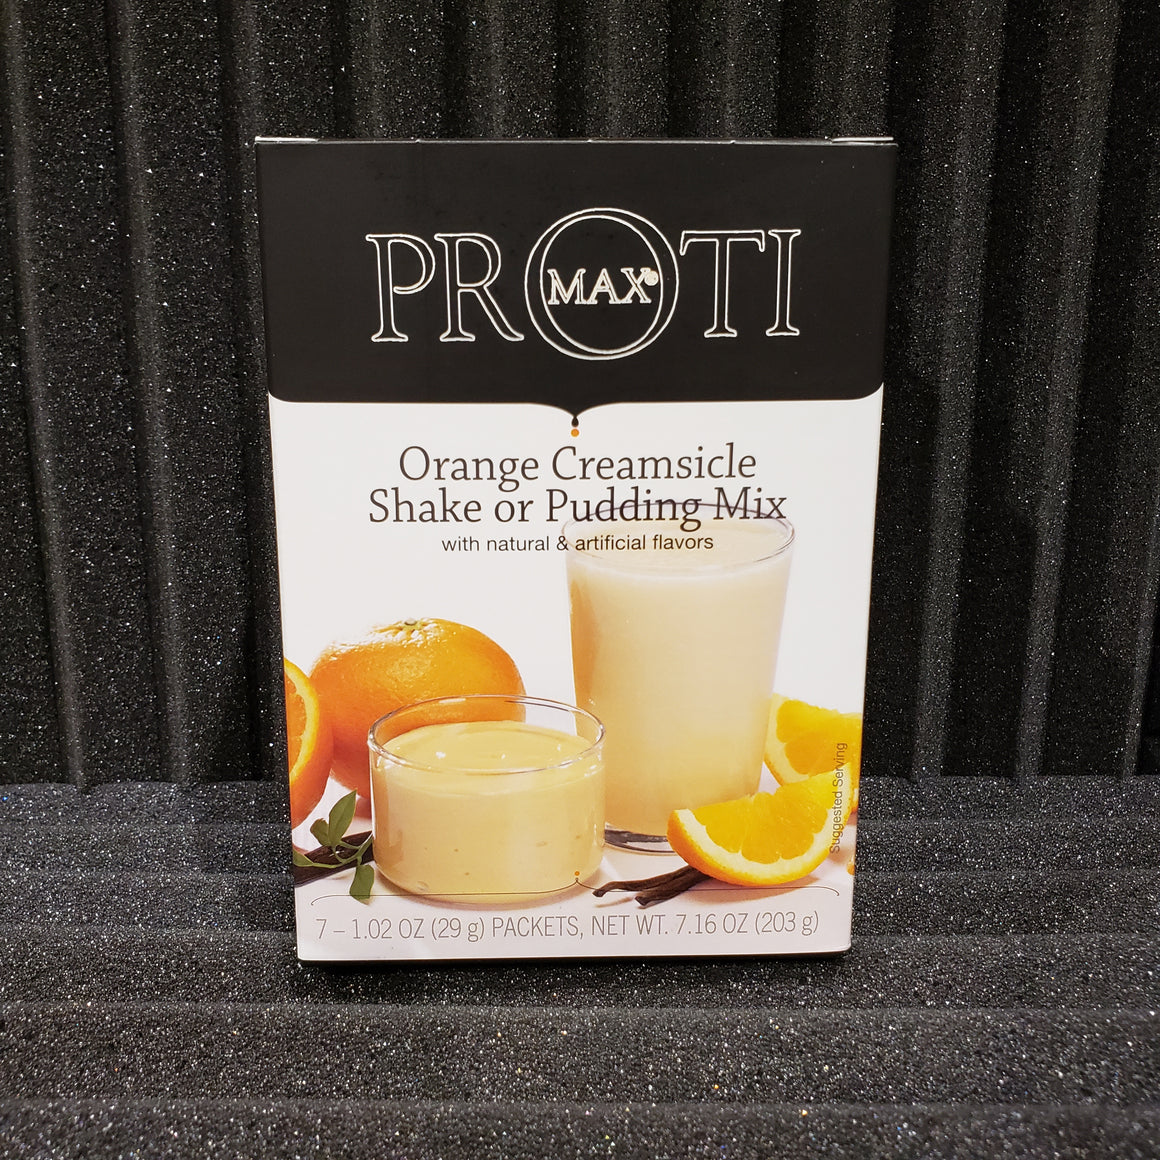 Orange Creamsicle Shake or Pudding Mix